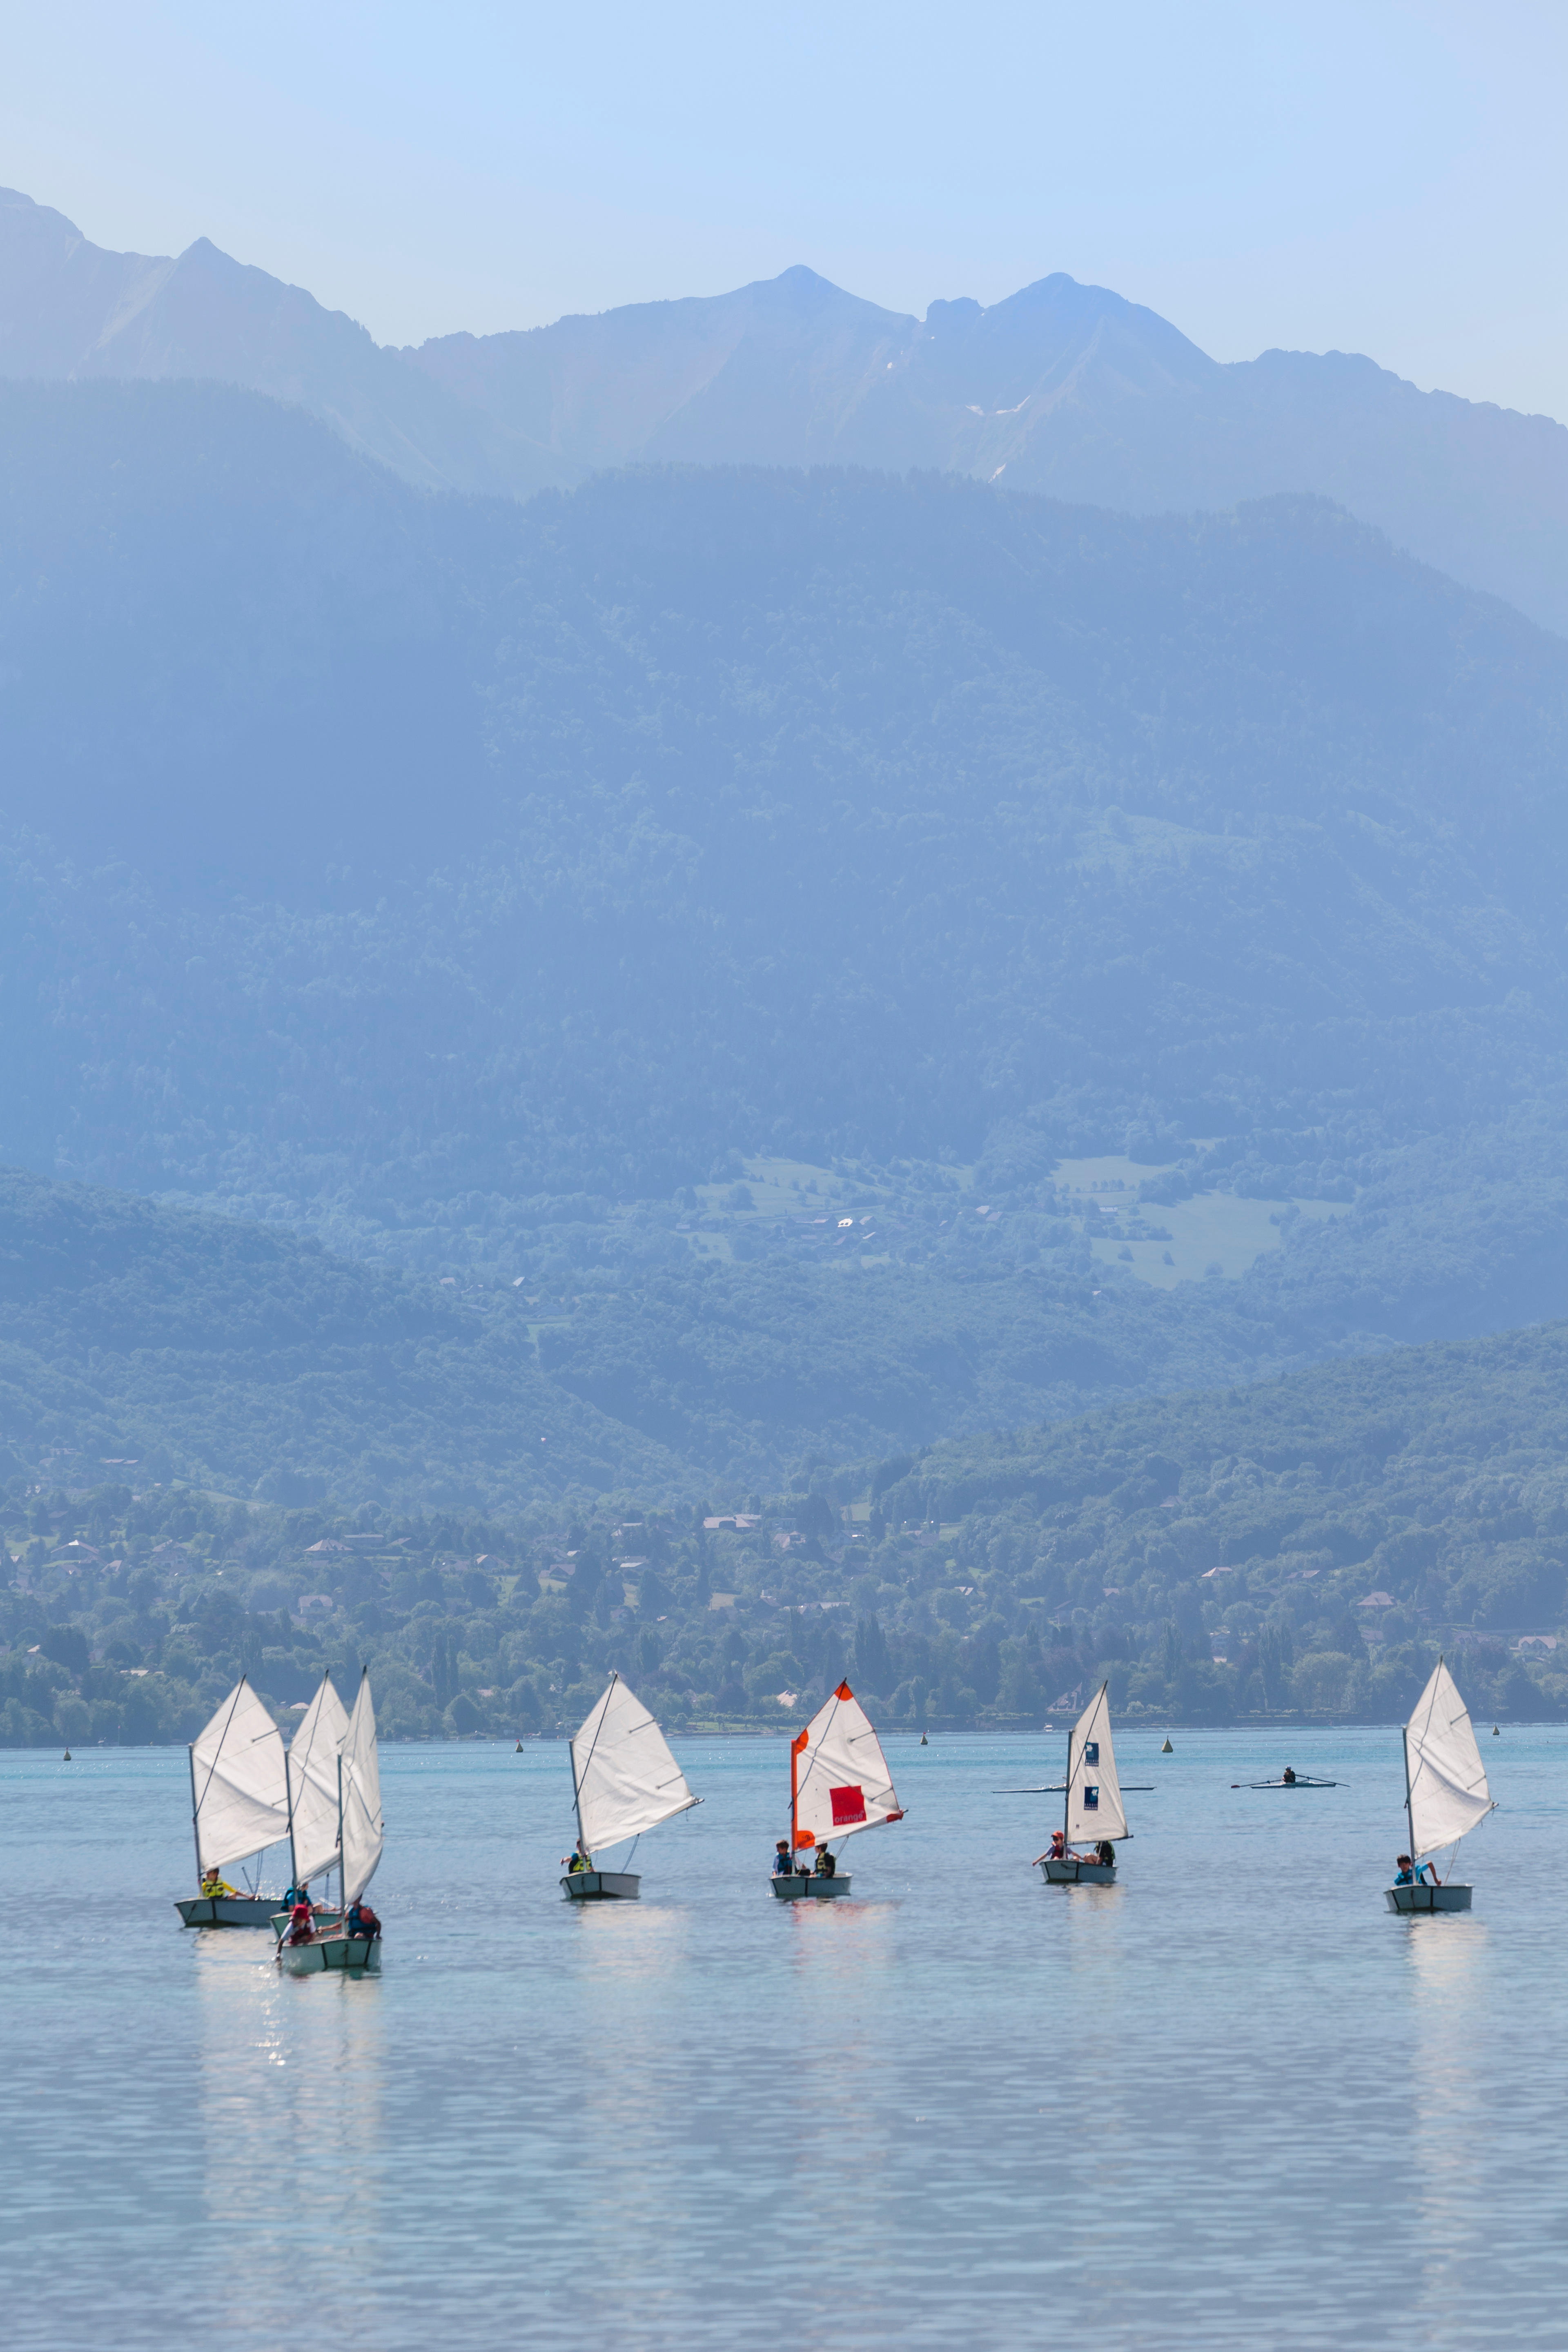 Annecy, Haute-Savoie department, Rhone-Alpes, France. Children sailing dinghies on Lake Annecy.